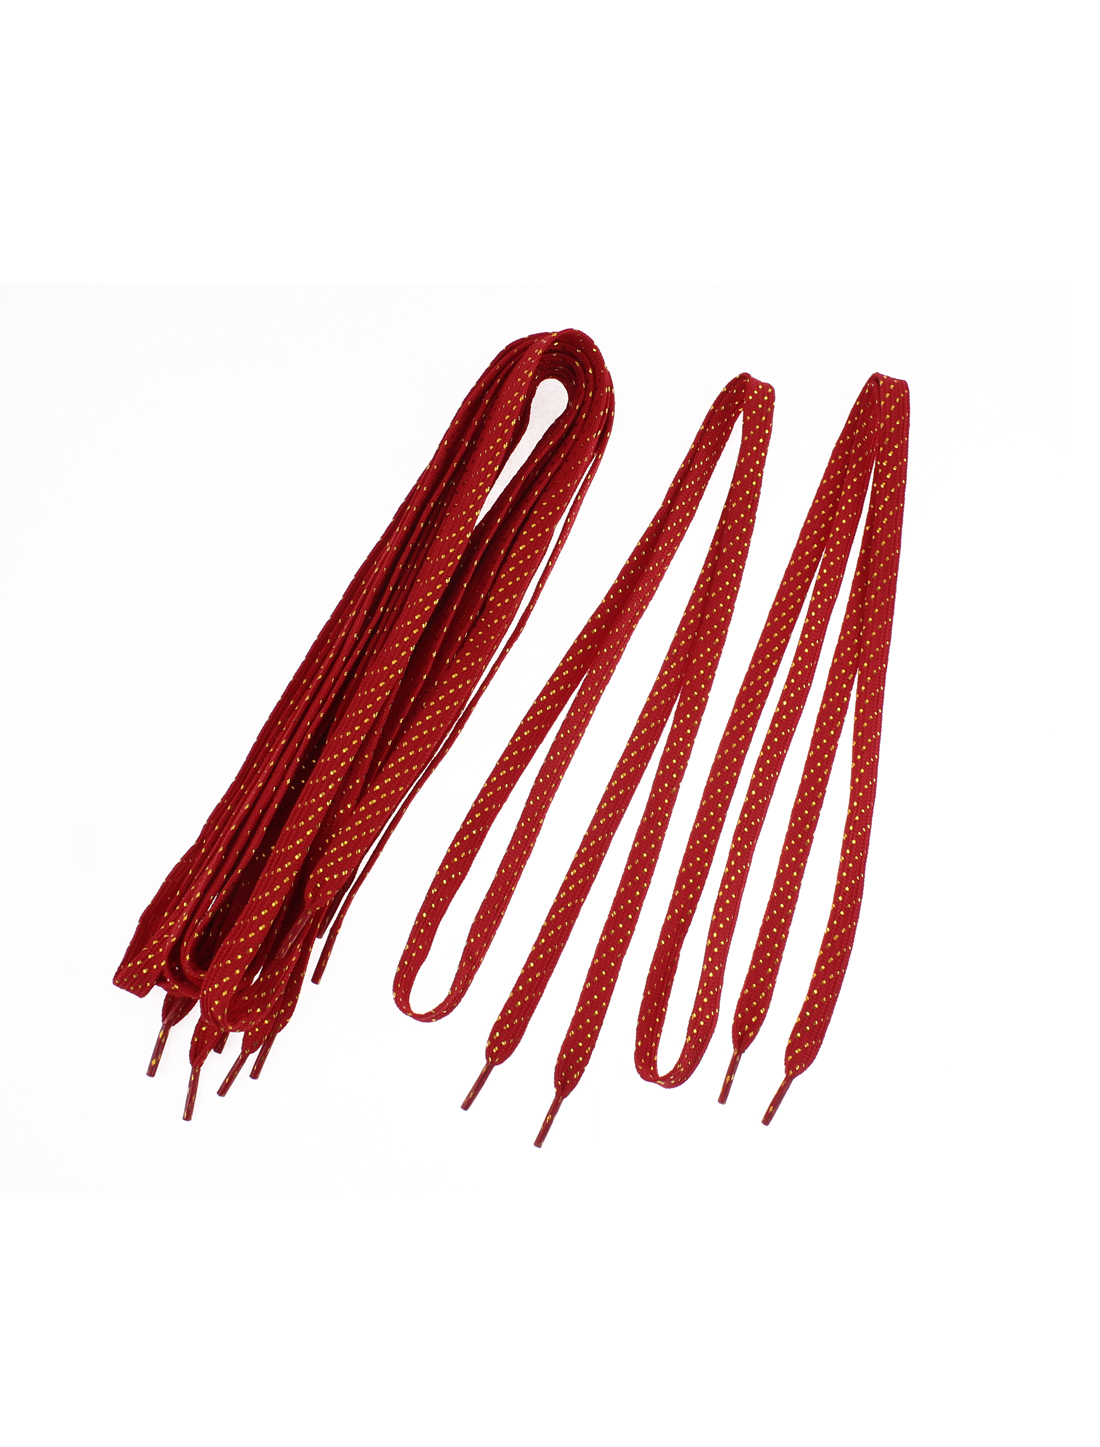 Leisure Shoes Glitter Tinsel Design Flat Shoelaces Red 108cm Length 5 Pairs